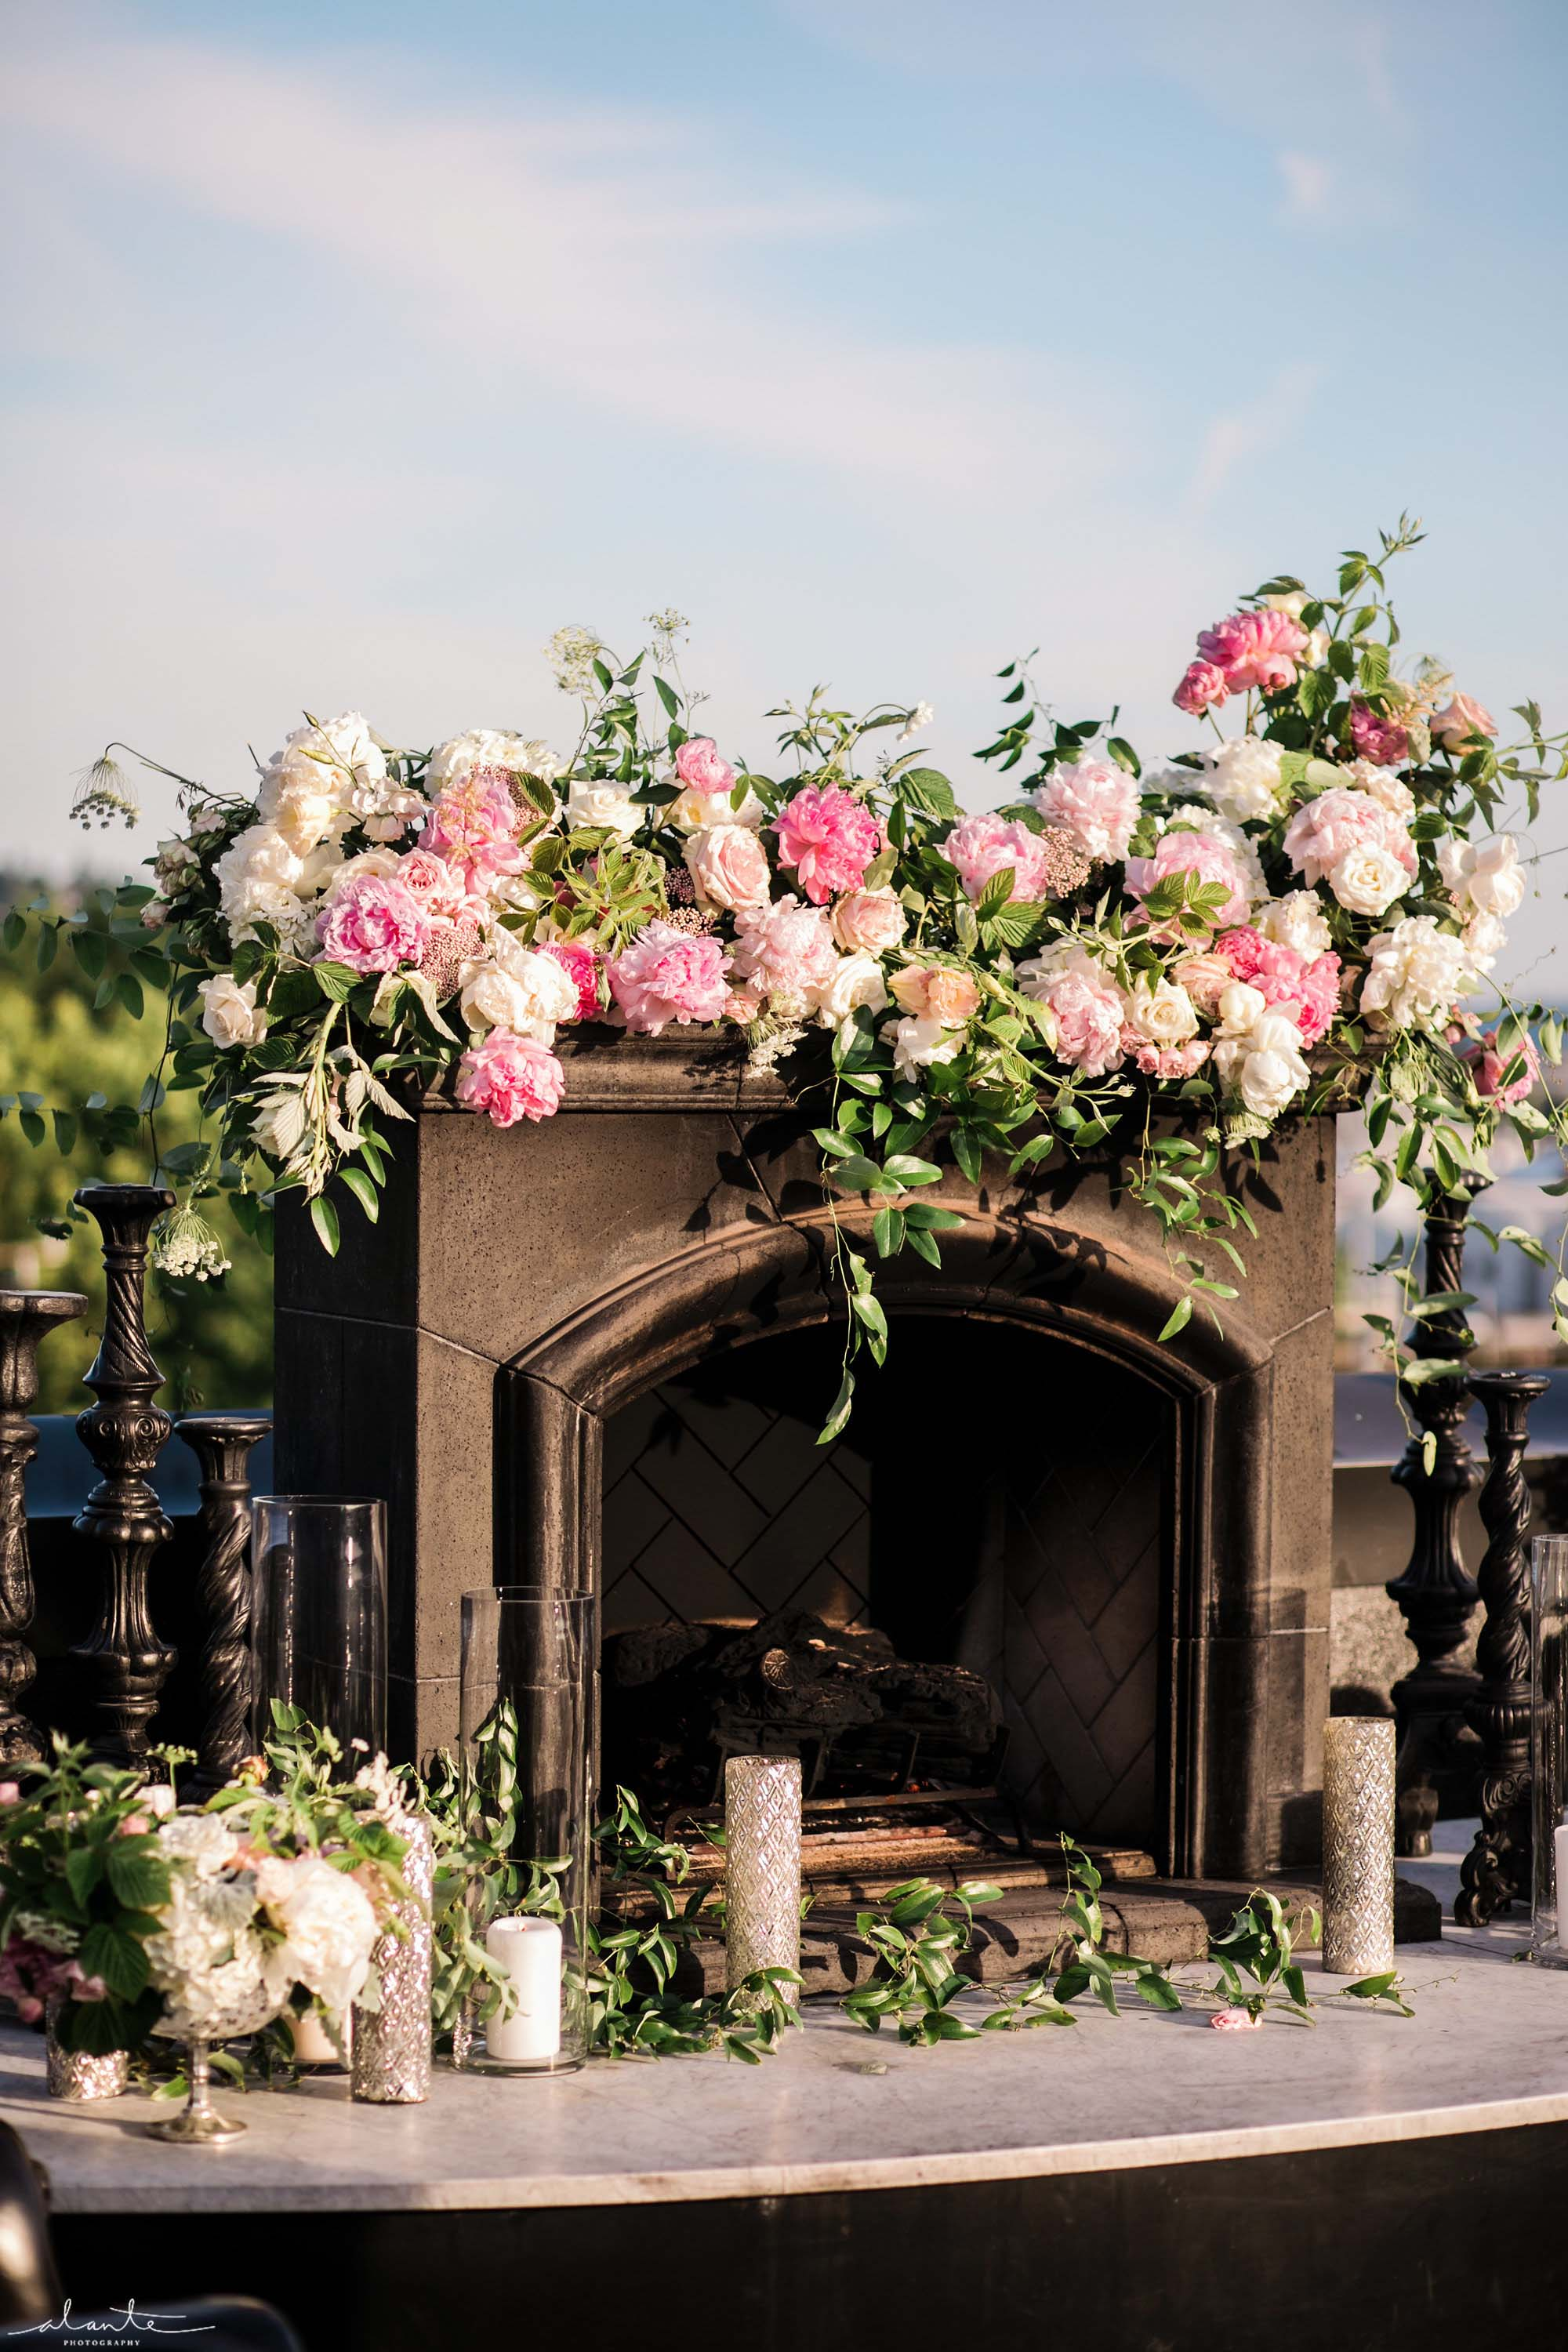 Fireplace covered in pink flowers and greenery at Olympic Rooftop Pavilion wedding in Ballard, designed by Flora Nova Design Seattle